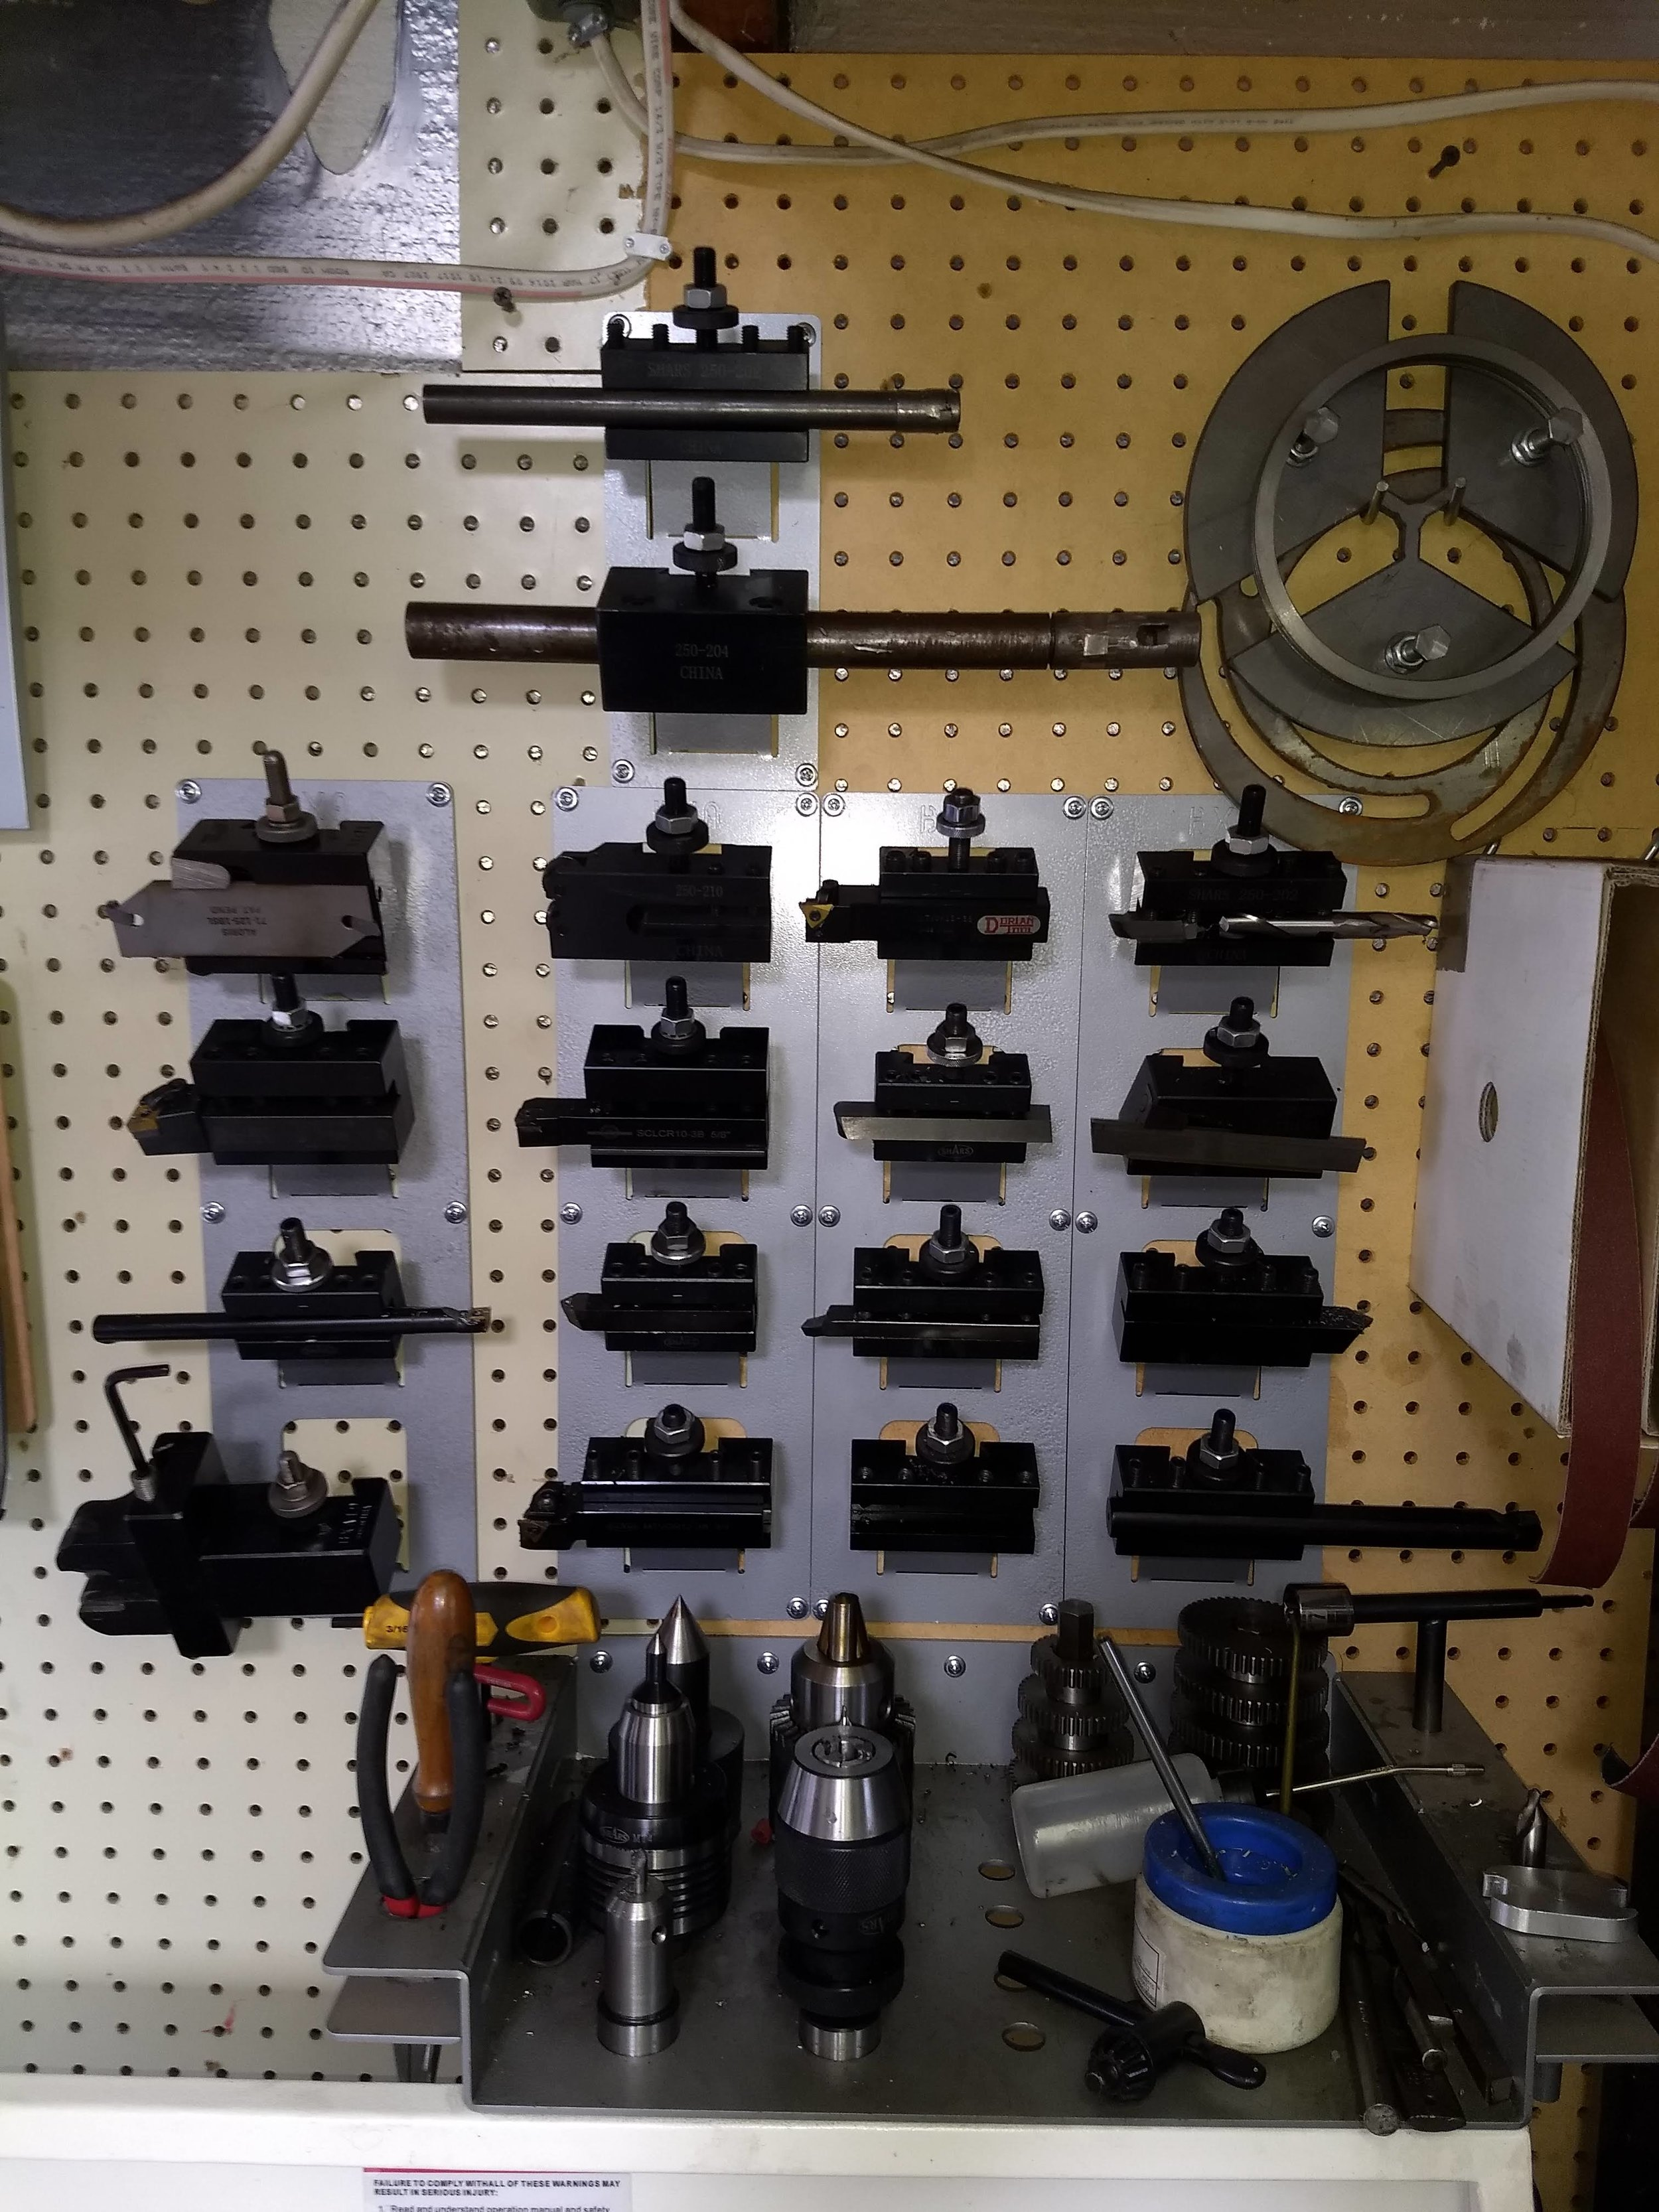 Tooling holders and storage